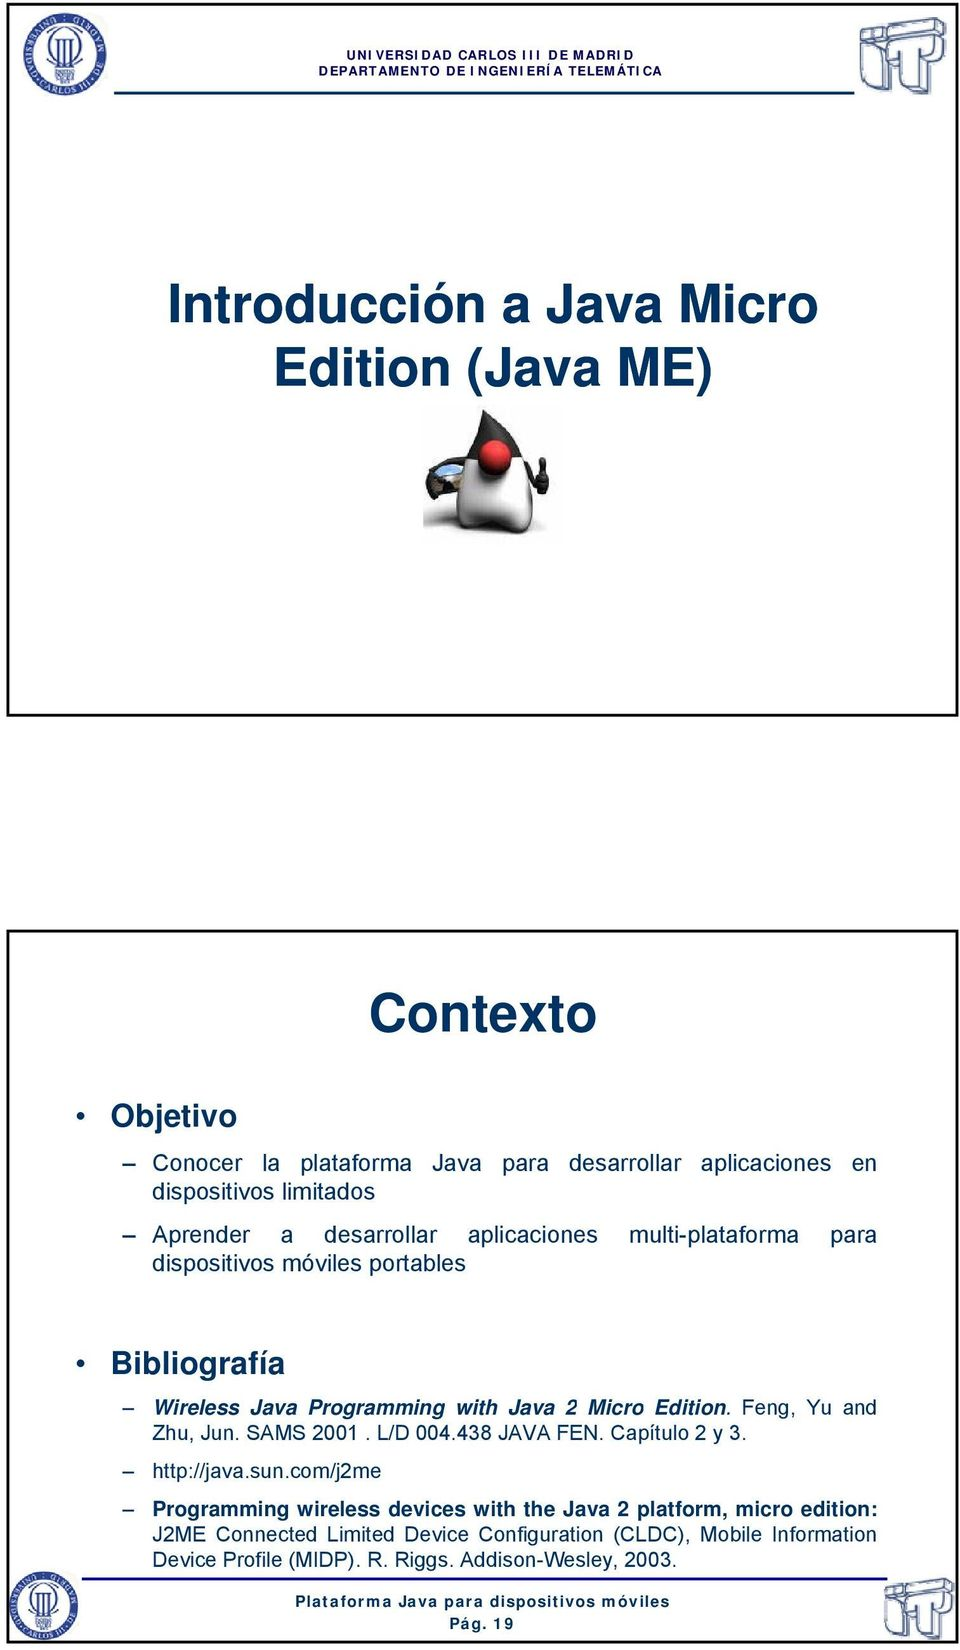 Programming with Java 2 Micro Edition. Feng, Yu and Zhu, Jun. SAMS 2001. L/D 004.438 JAVA FEN. Capítulo 2 y 3. http://java.sun.